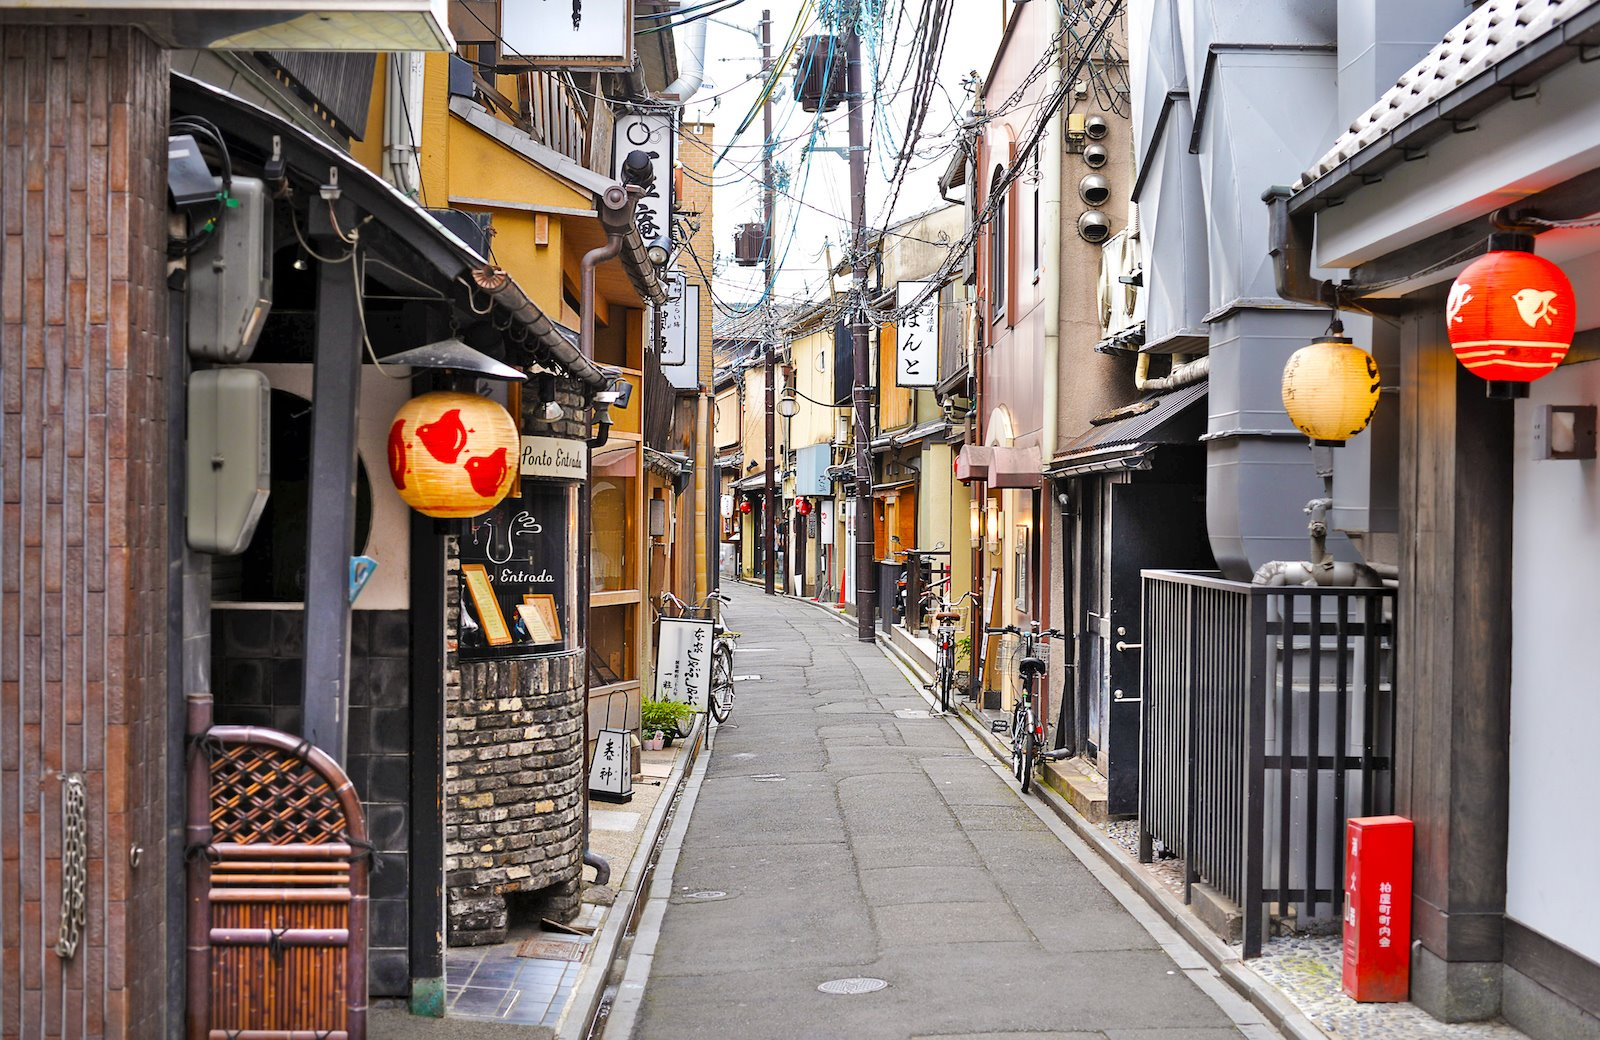 The backstreets of Kyoto